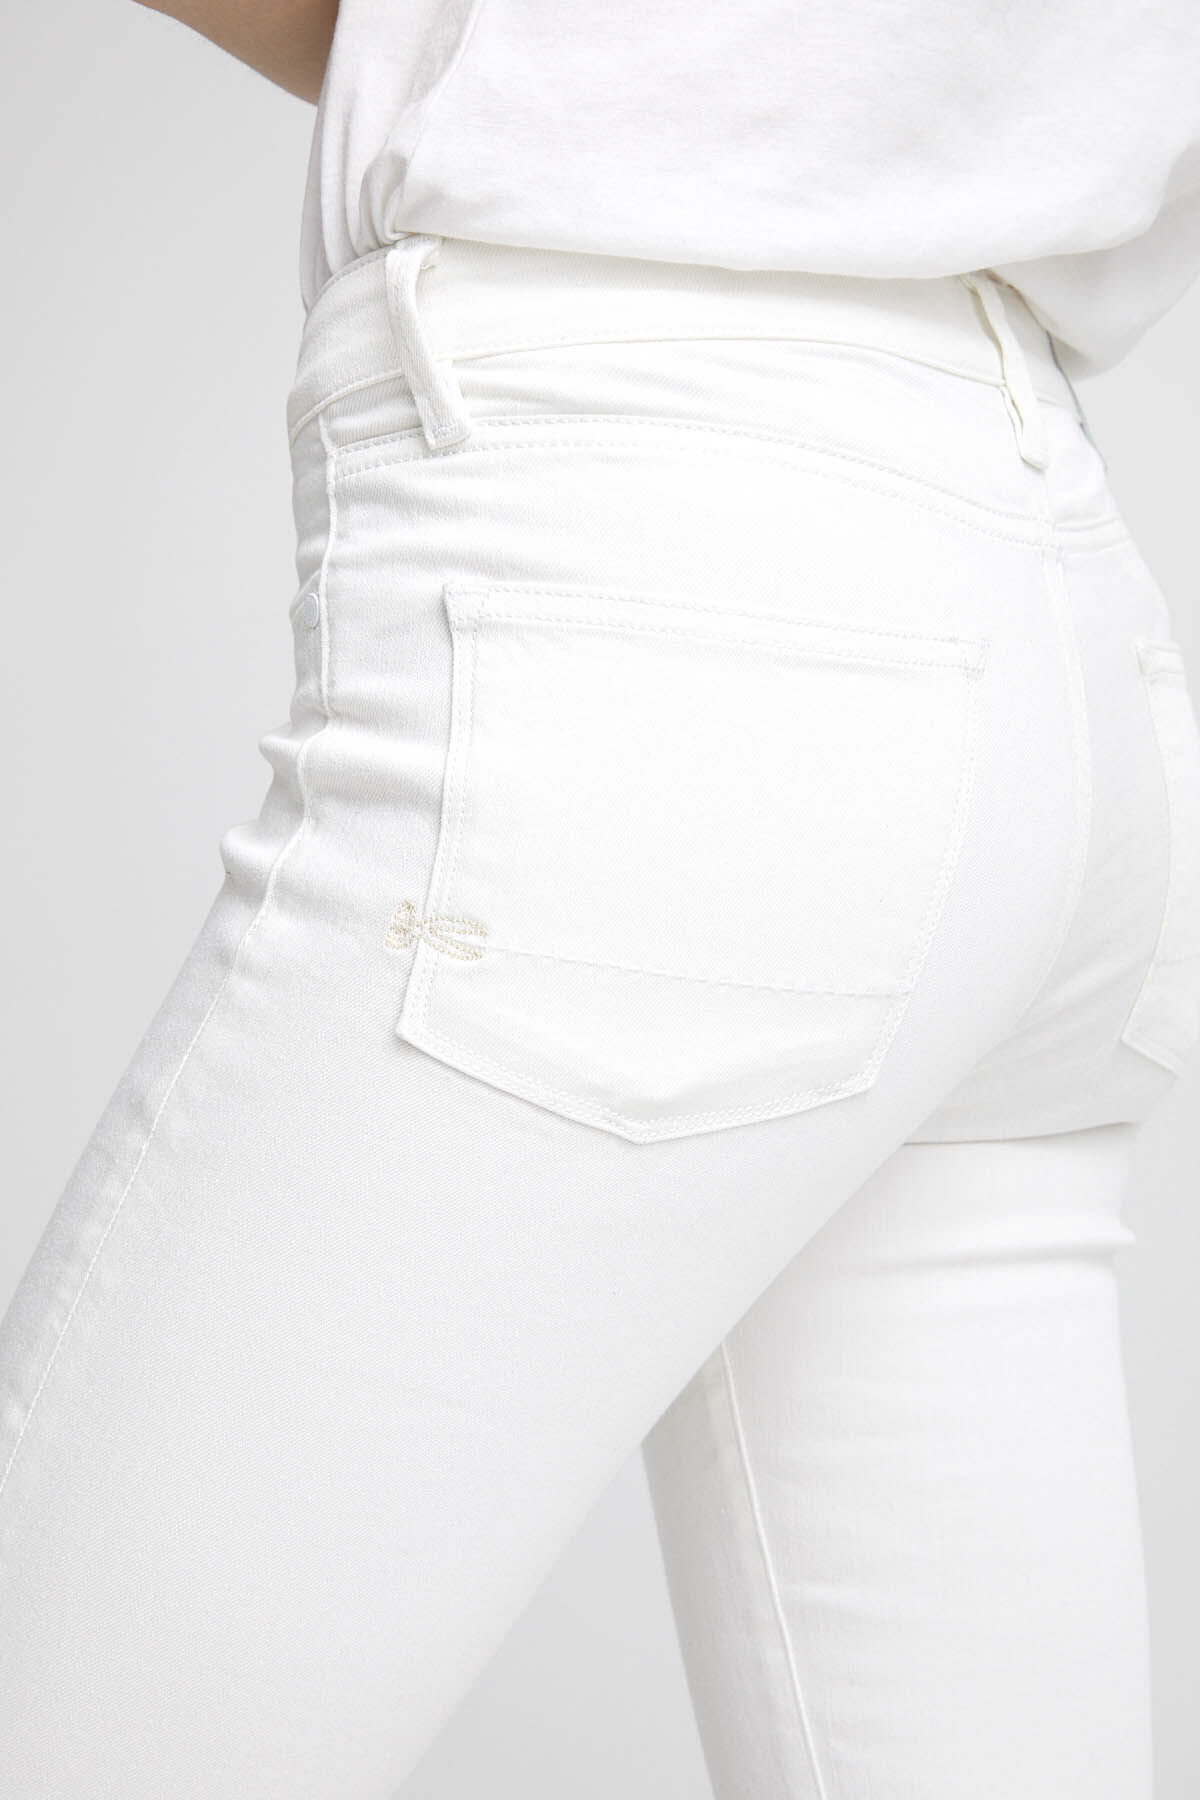 SPRAY White Clean Finish Denim - Mid-rise Tight Fit